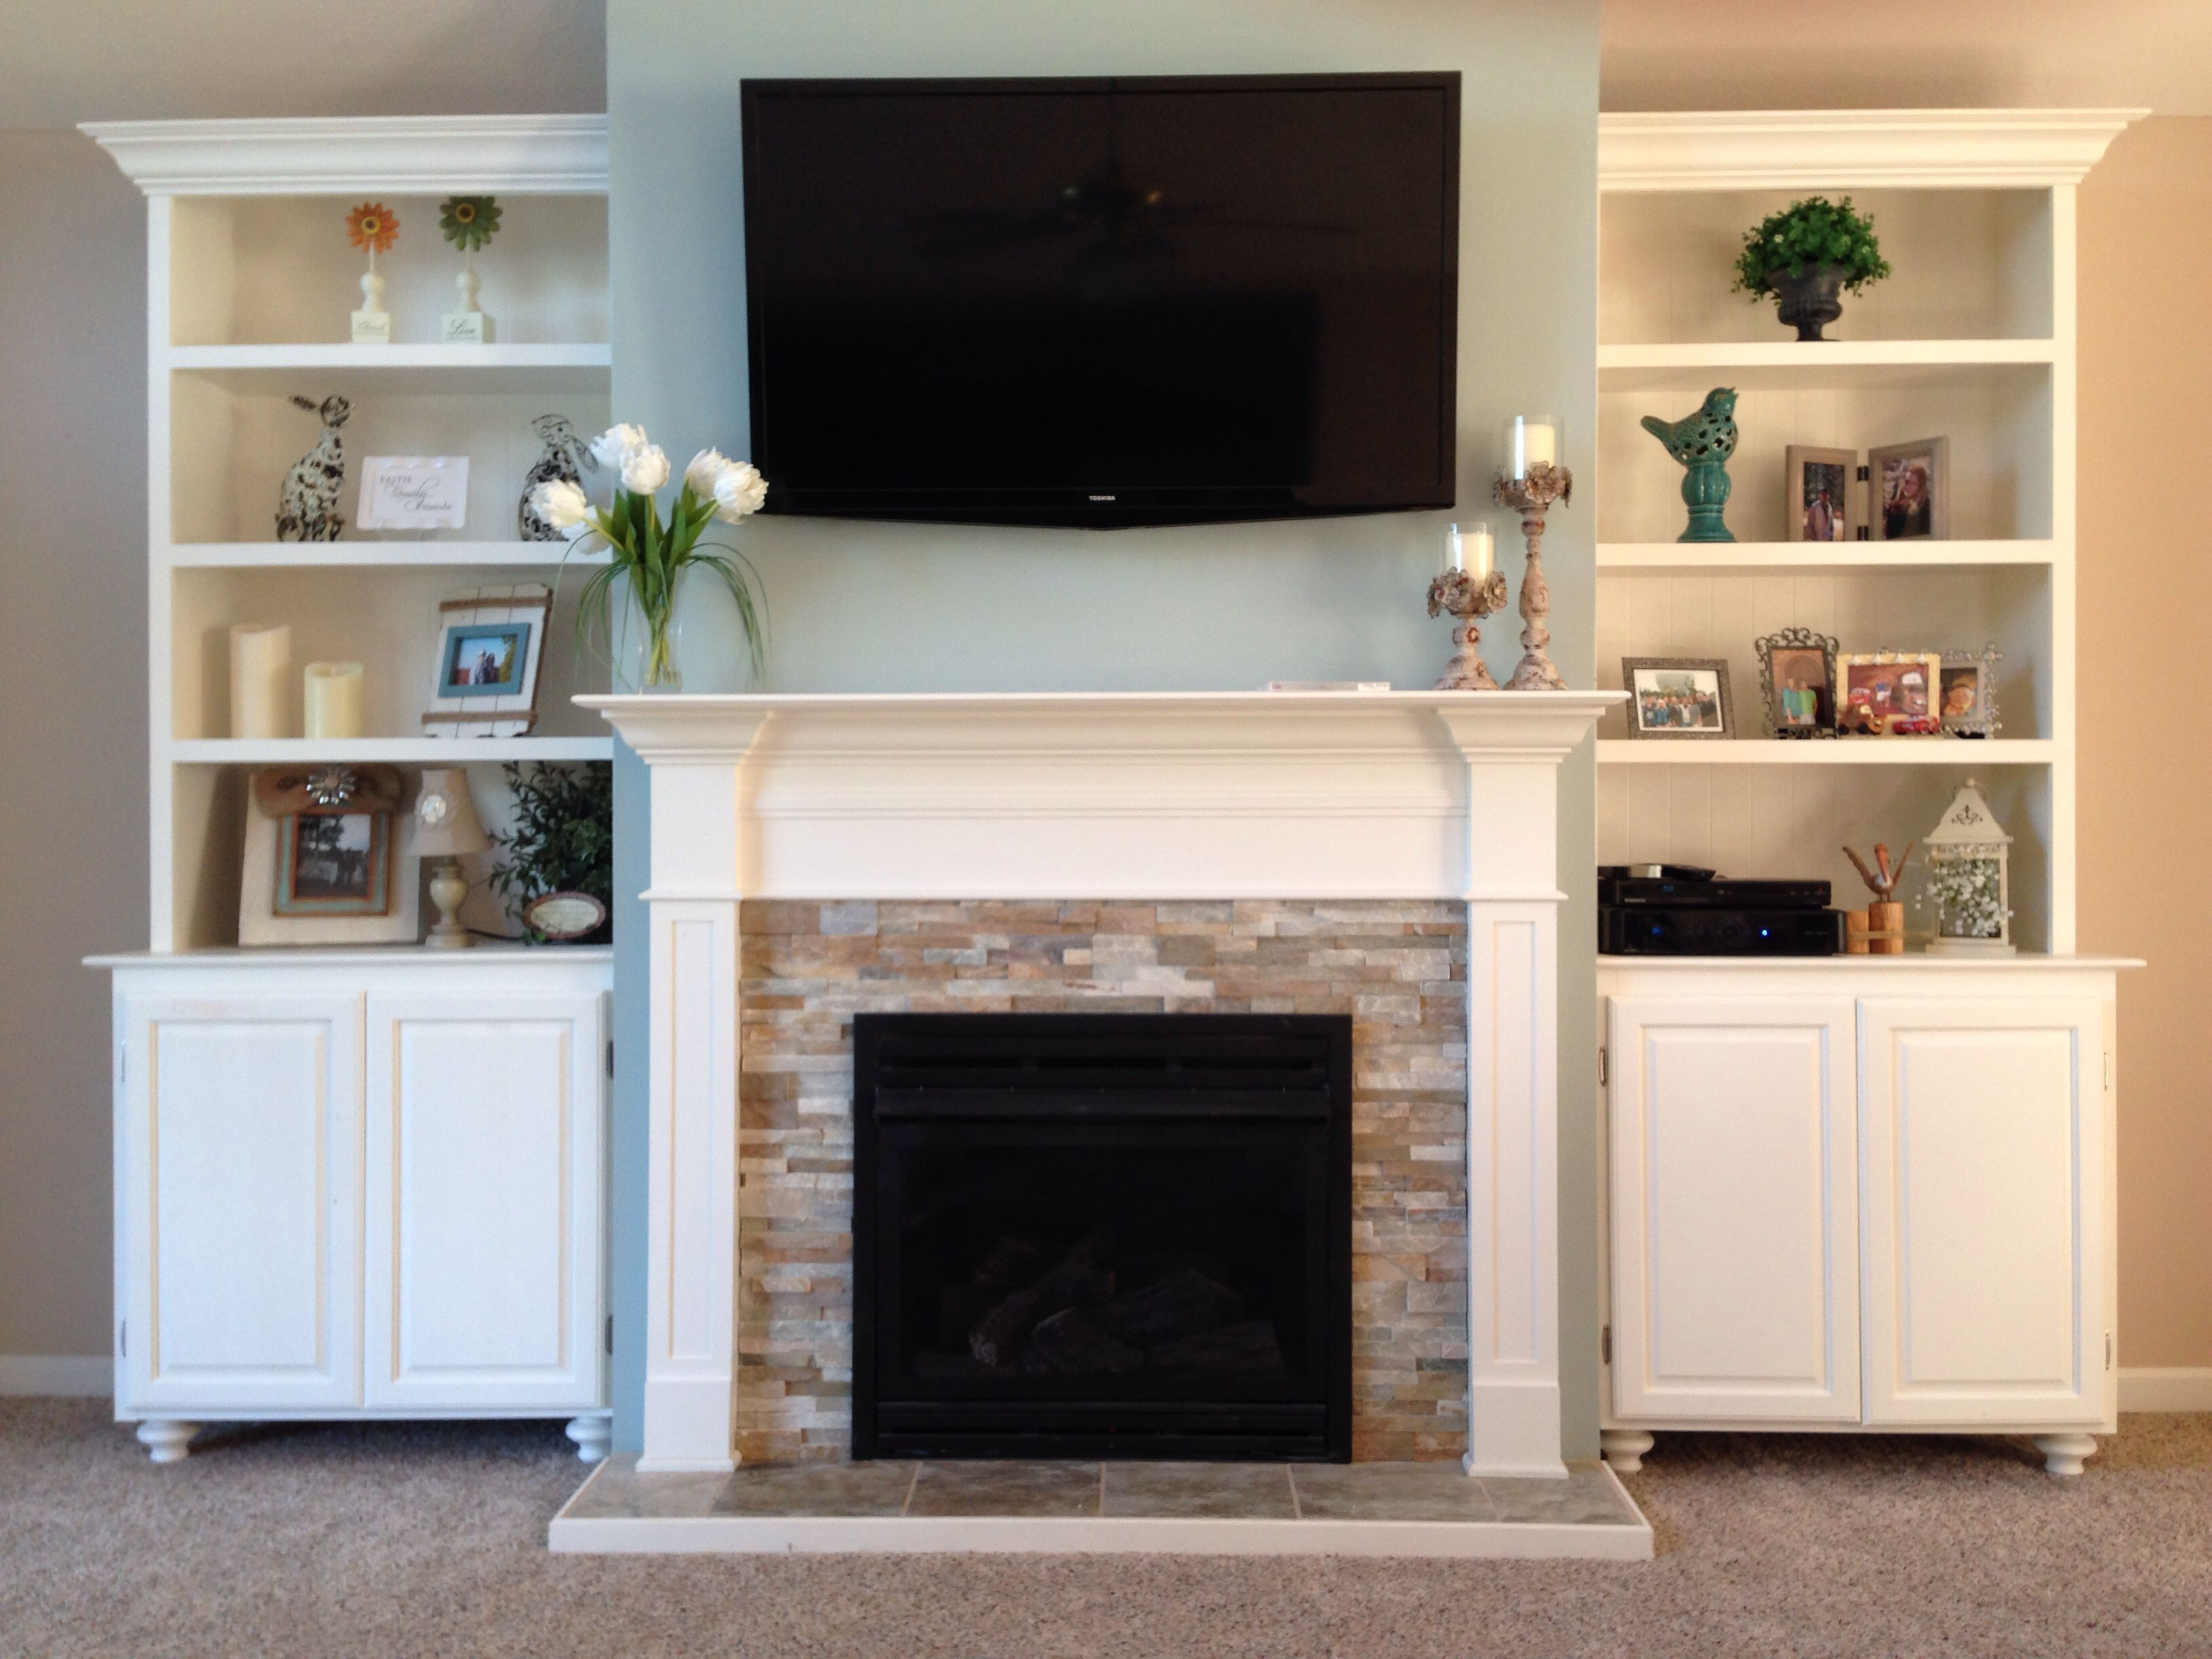 my husband built this beautiful fireplace and matching hutches